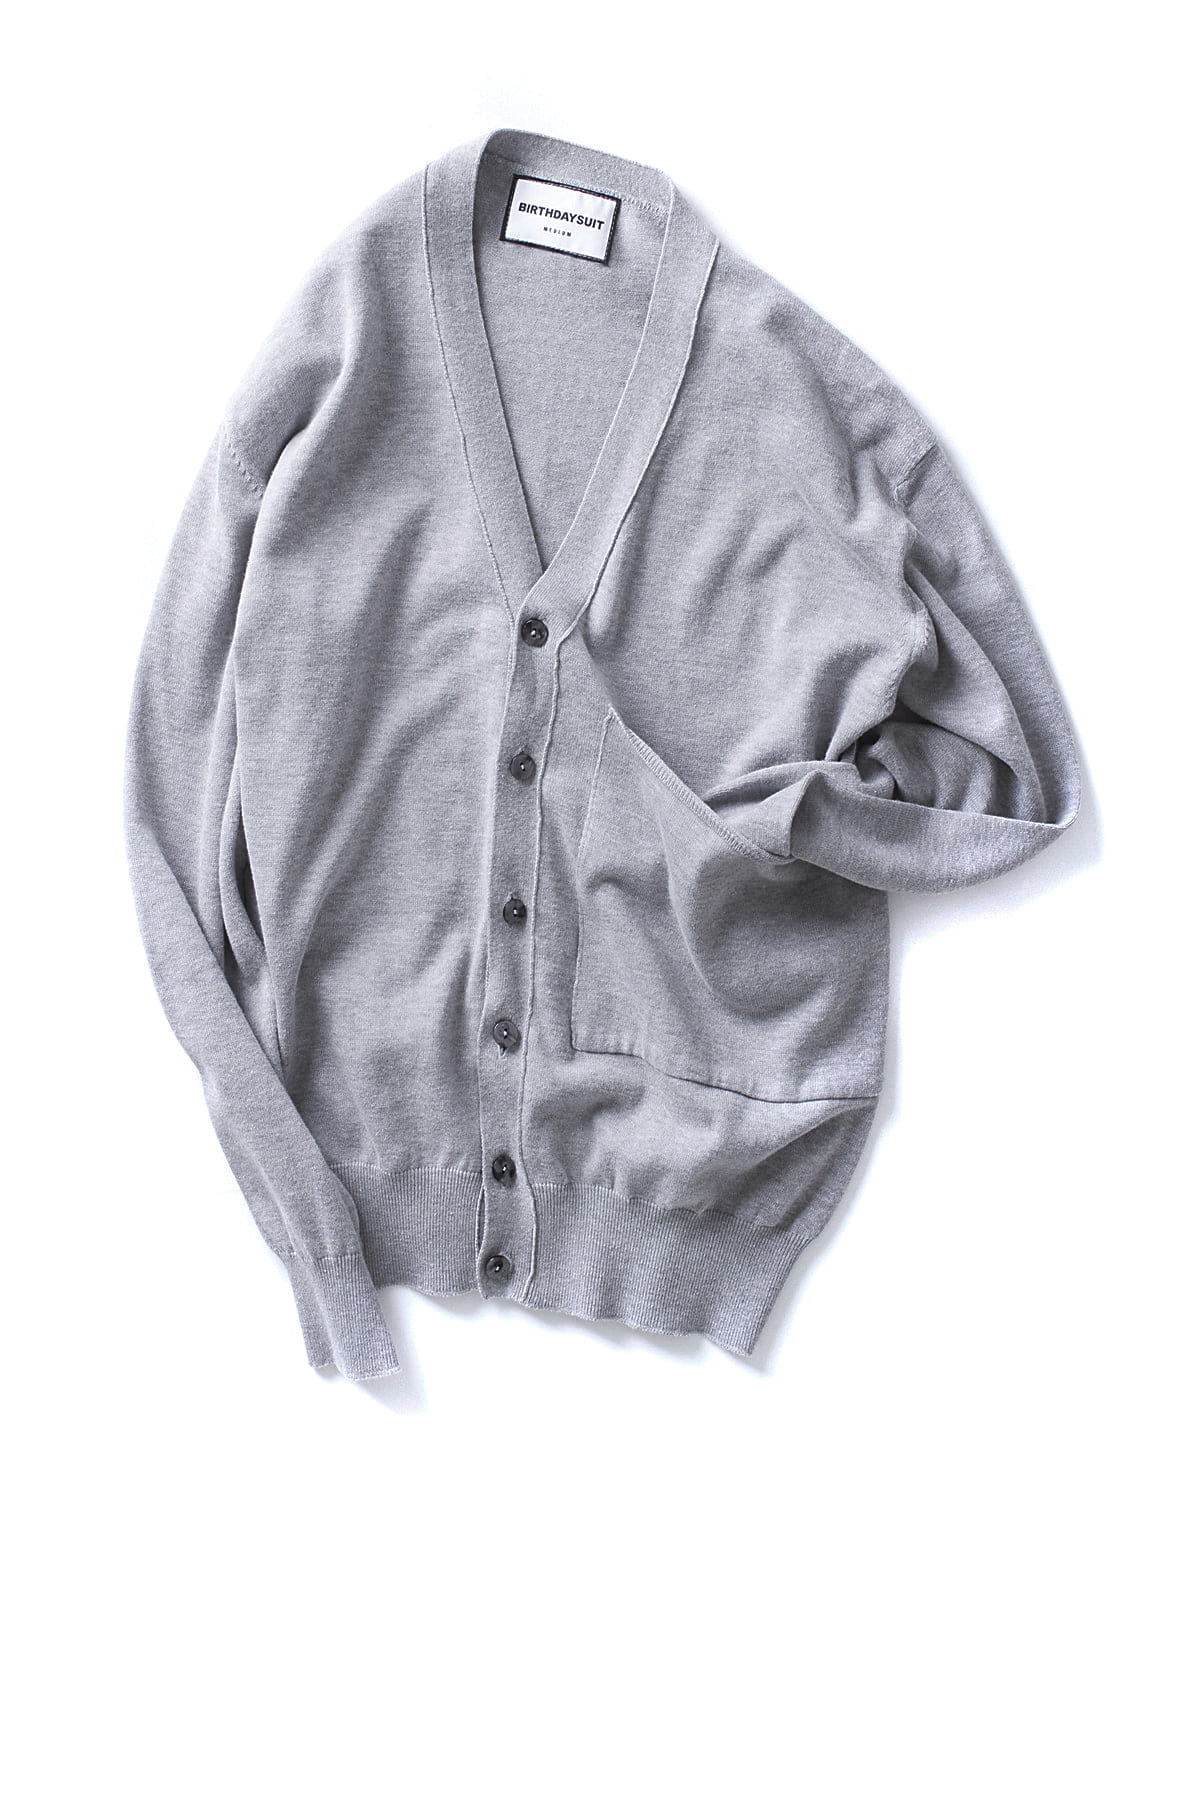 BIRTHDAYSUIT : Big Pocket Knit Cardigan (Grey)